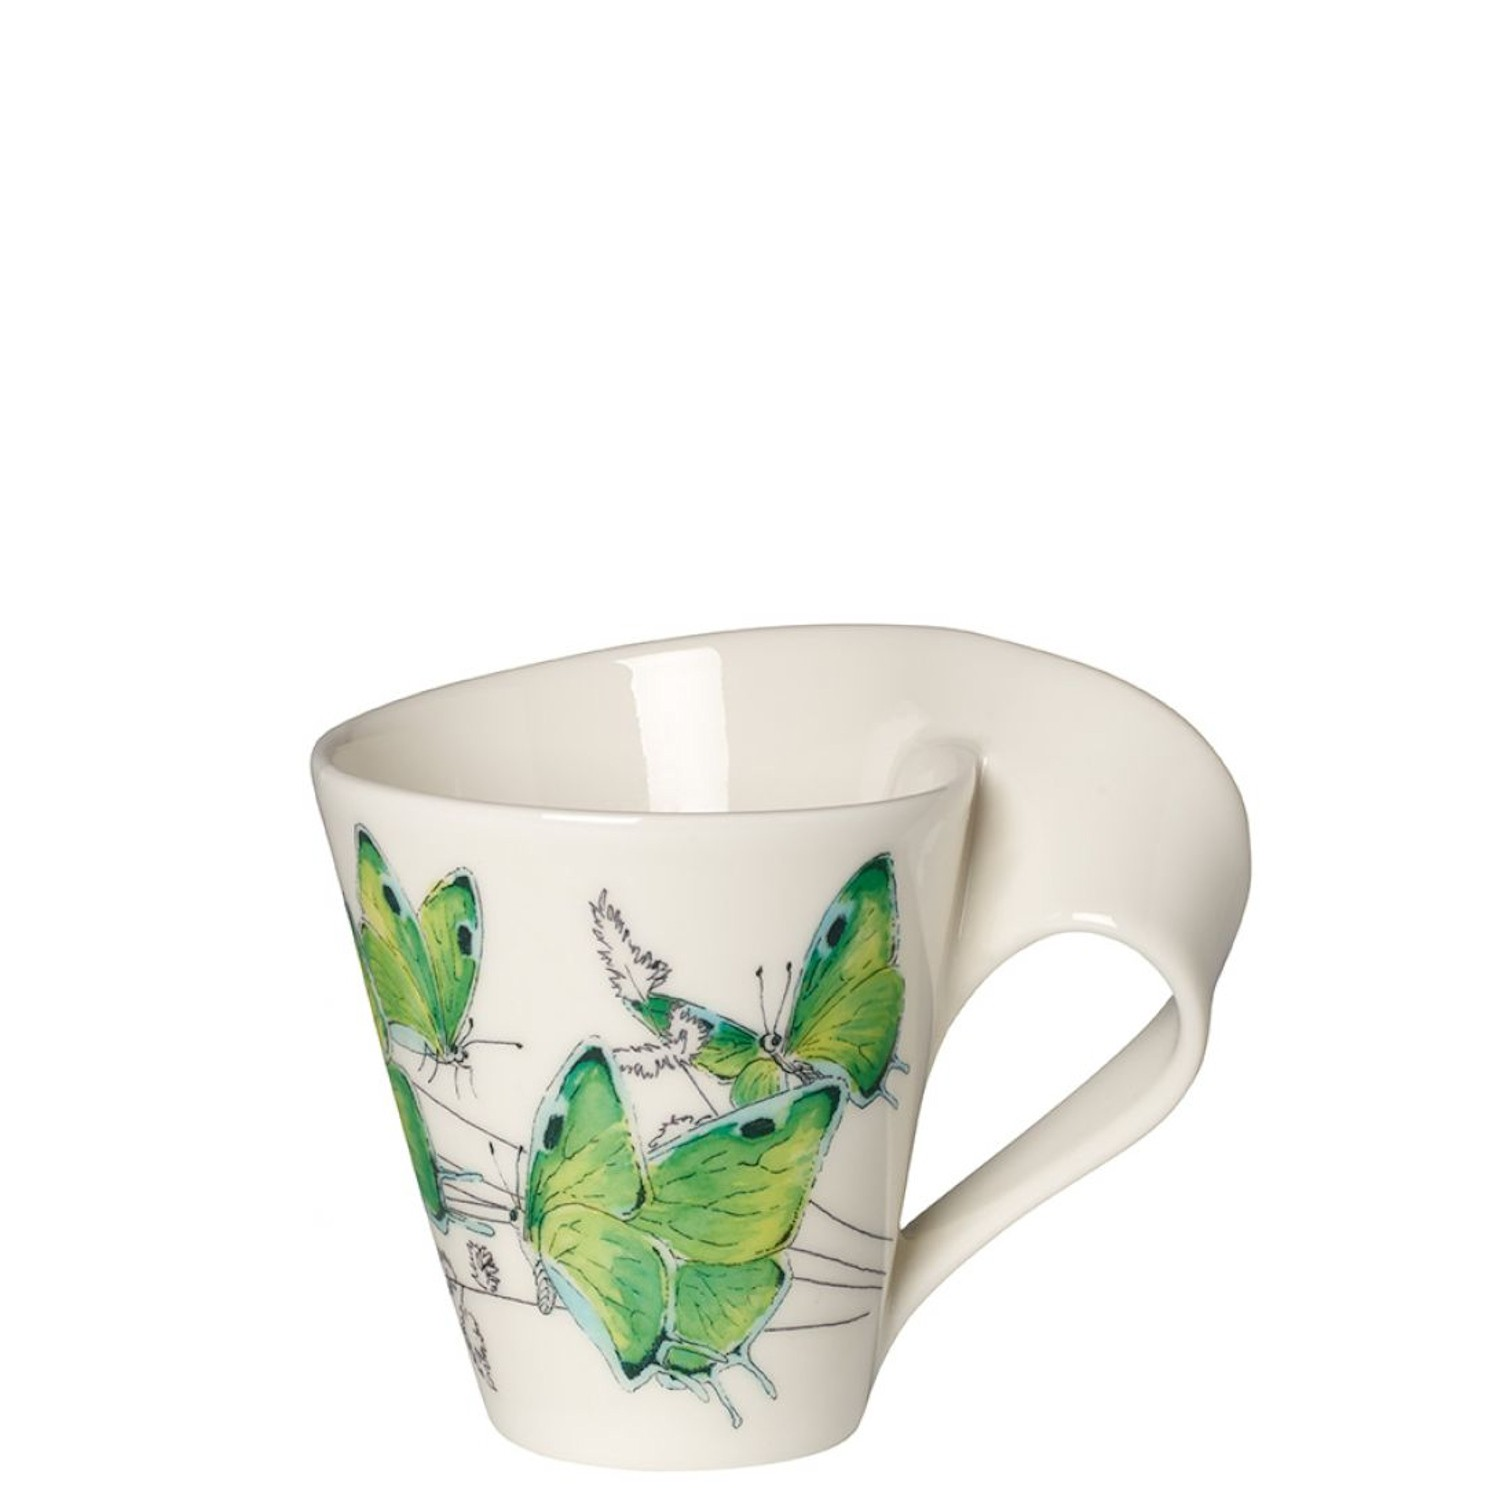 Kubek villeroy boch new wave caffe deep green hairstreak for Villeroy boch wave